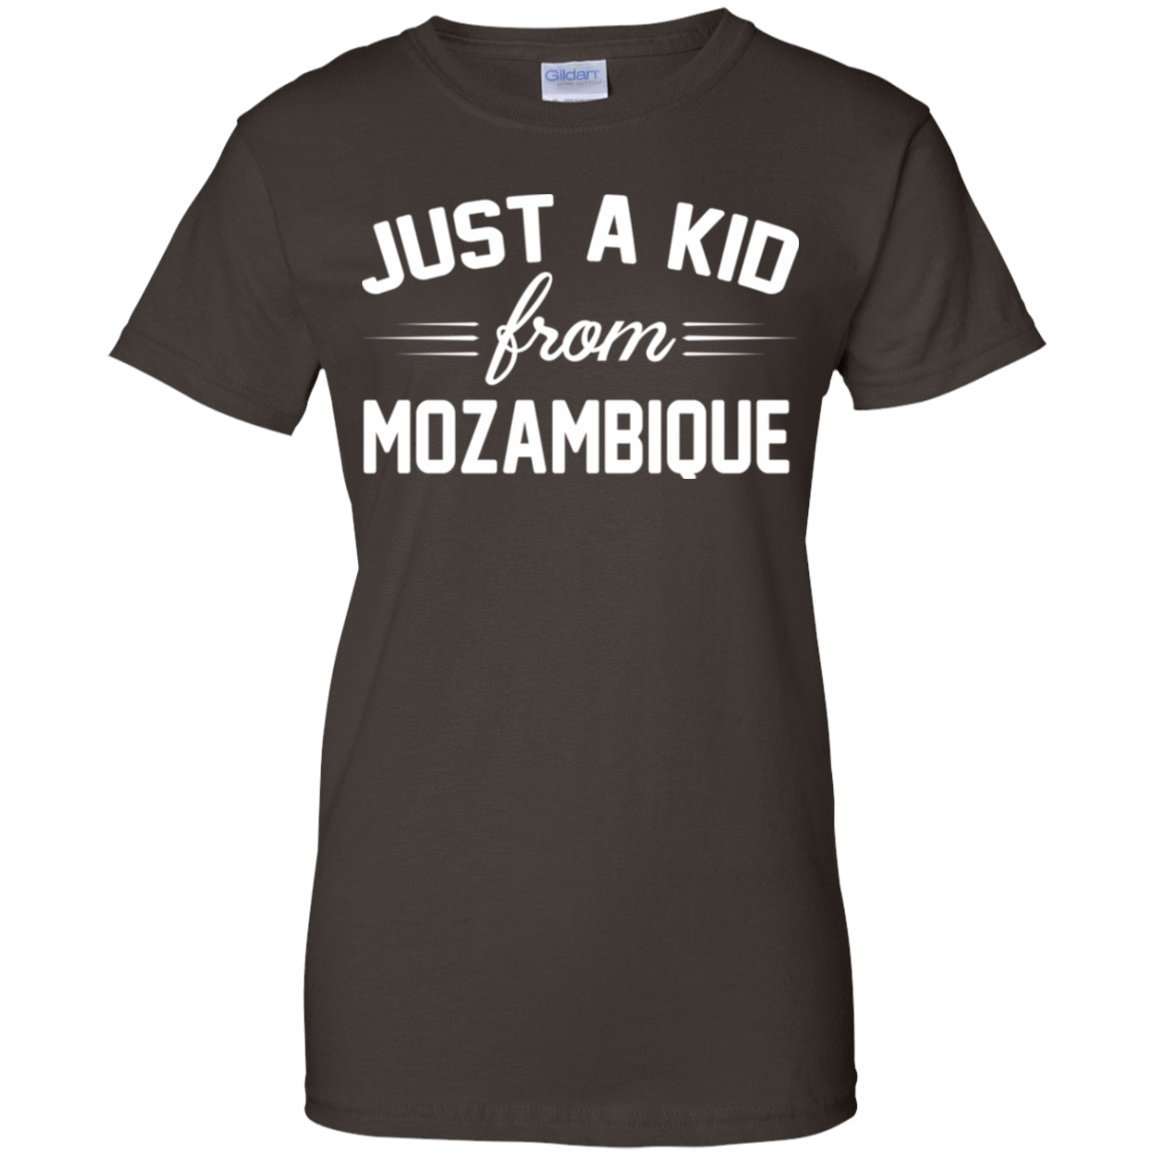 Just a Kid Store | Mozambique T-Shirts, Hoodie, Tank 939-9251-72091589-44702 - Tee Ript